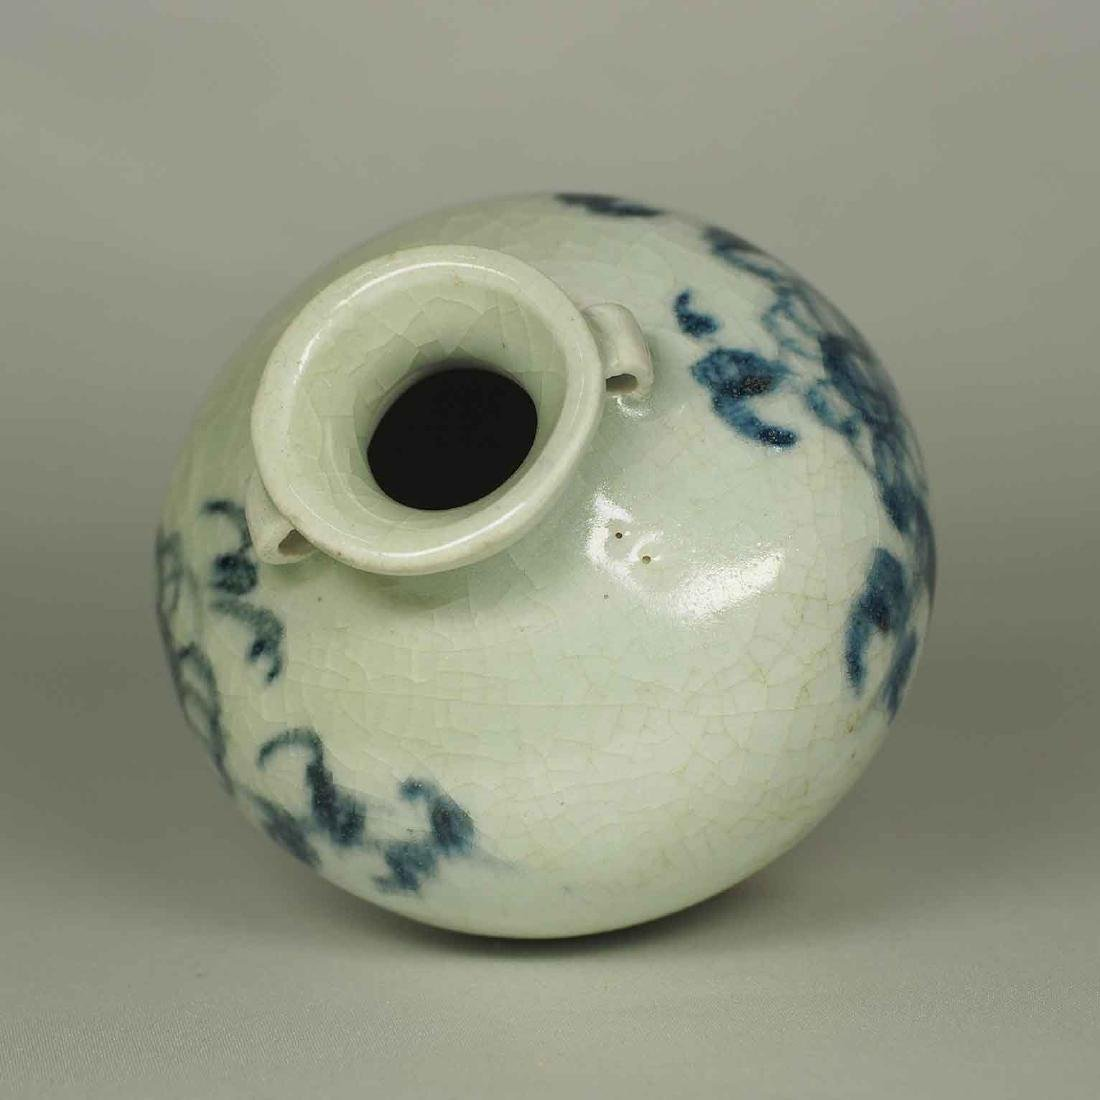 Jarlet with Chrysanthemum Flower, Yuan Dynasty - 5